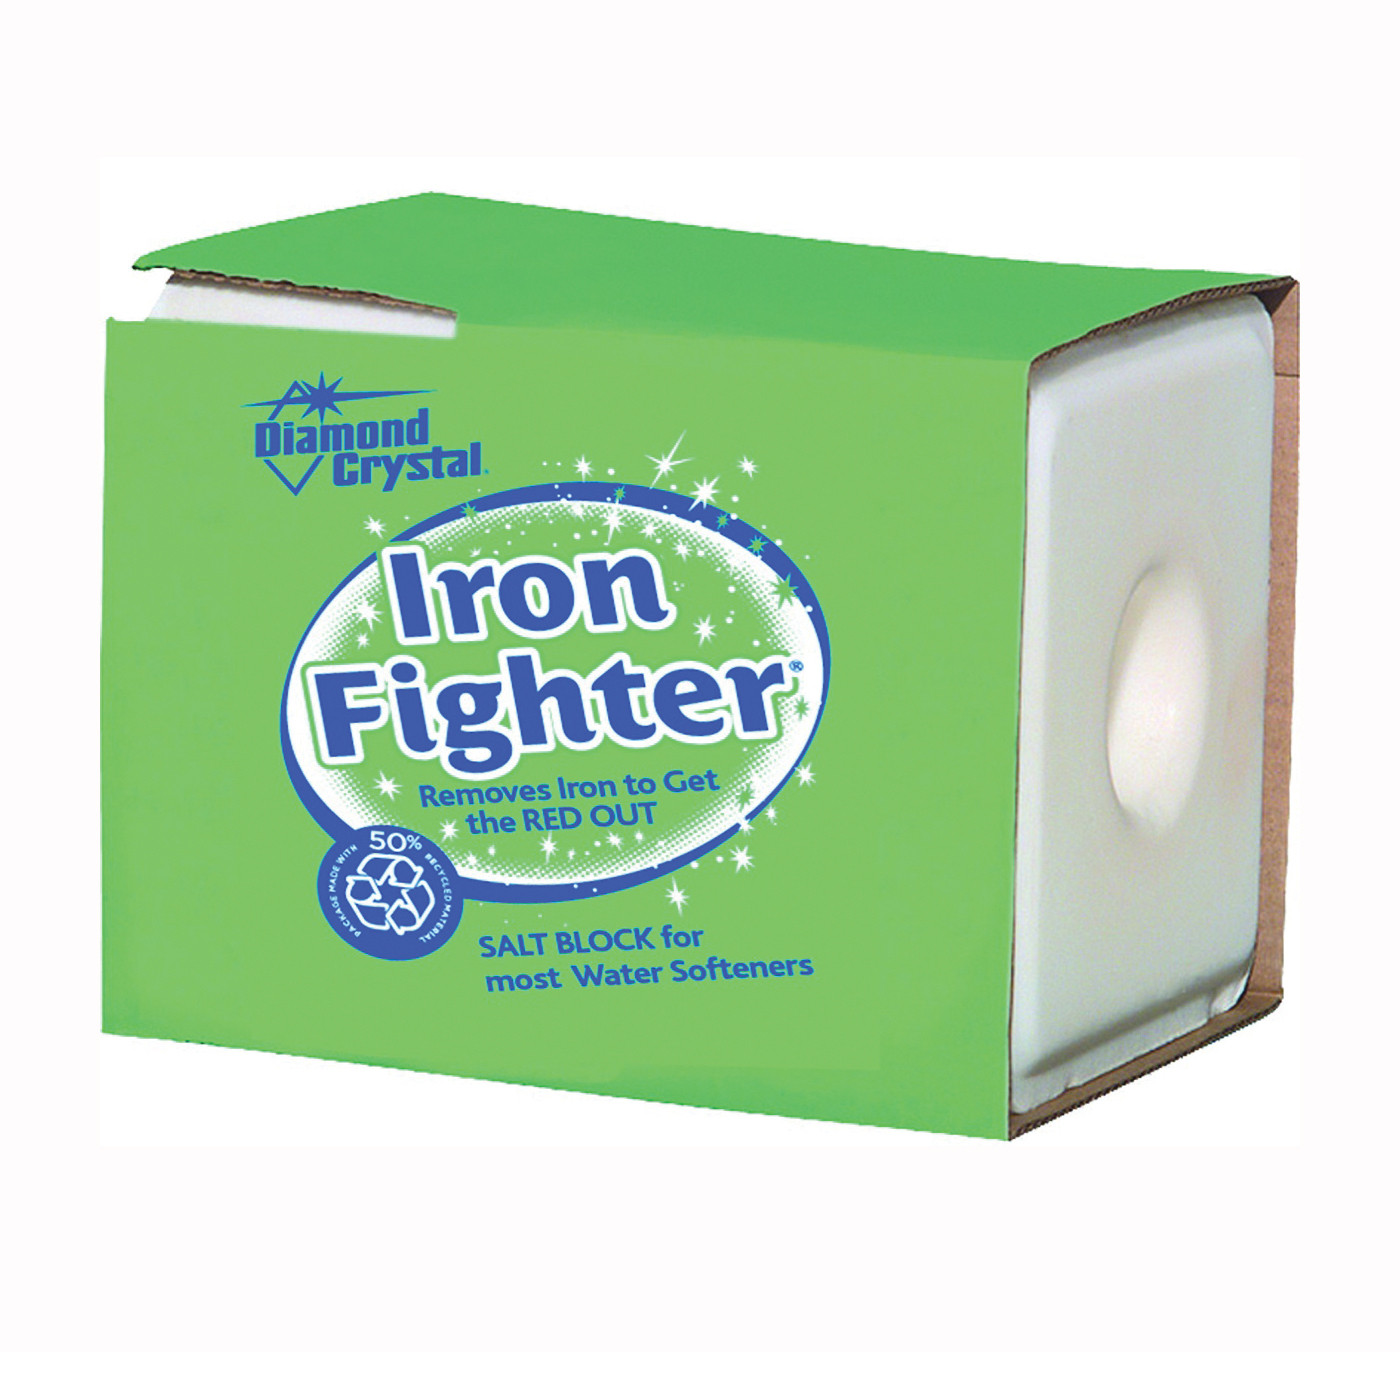 Picture of Cargill Diamond Crystal Iron Fighter 100012446 Salt Pellets, 50 lb Package, Bag, Blocks